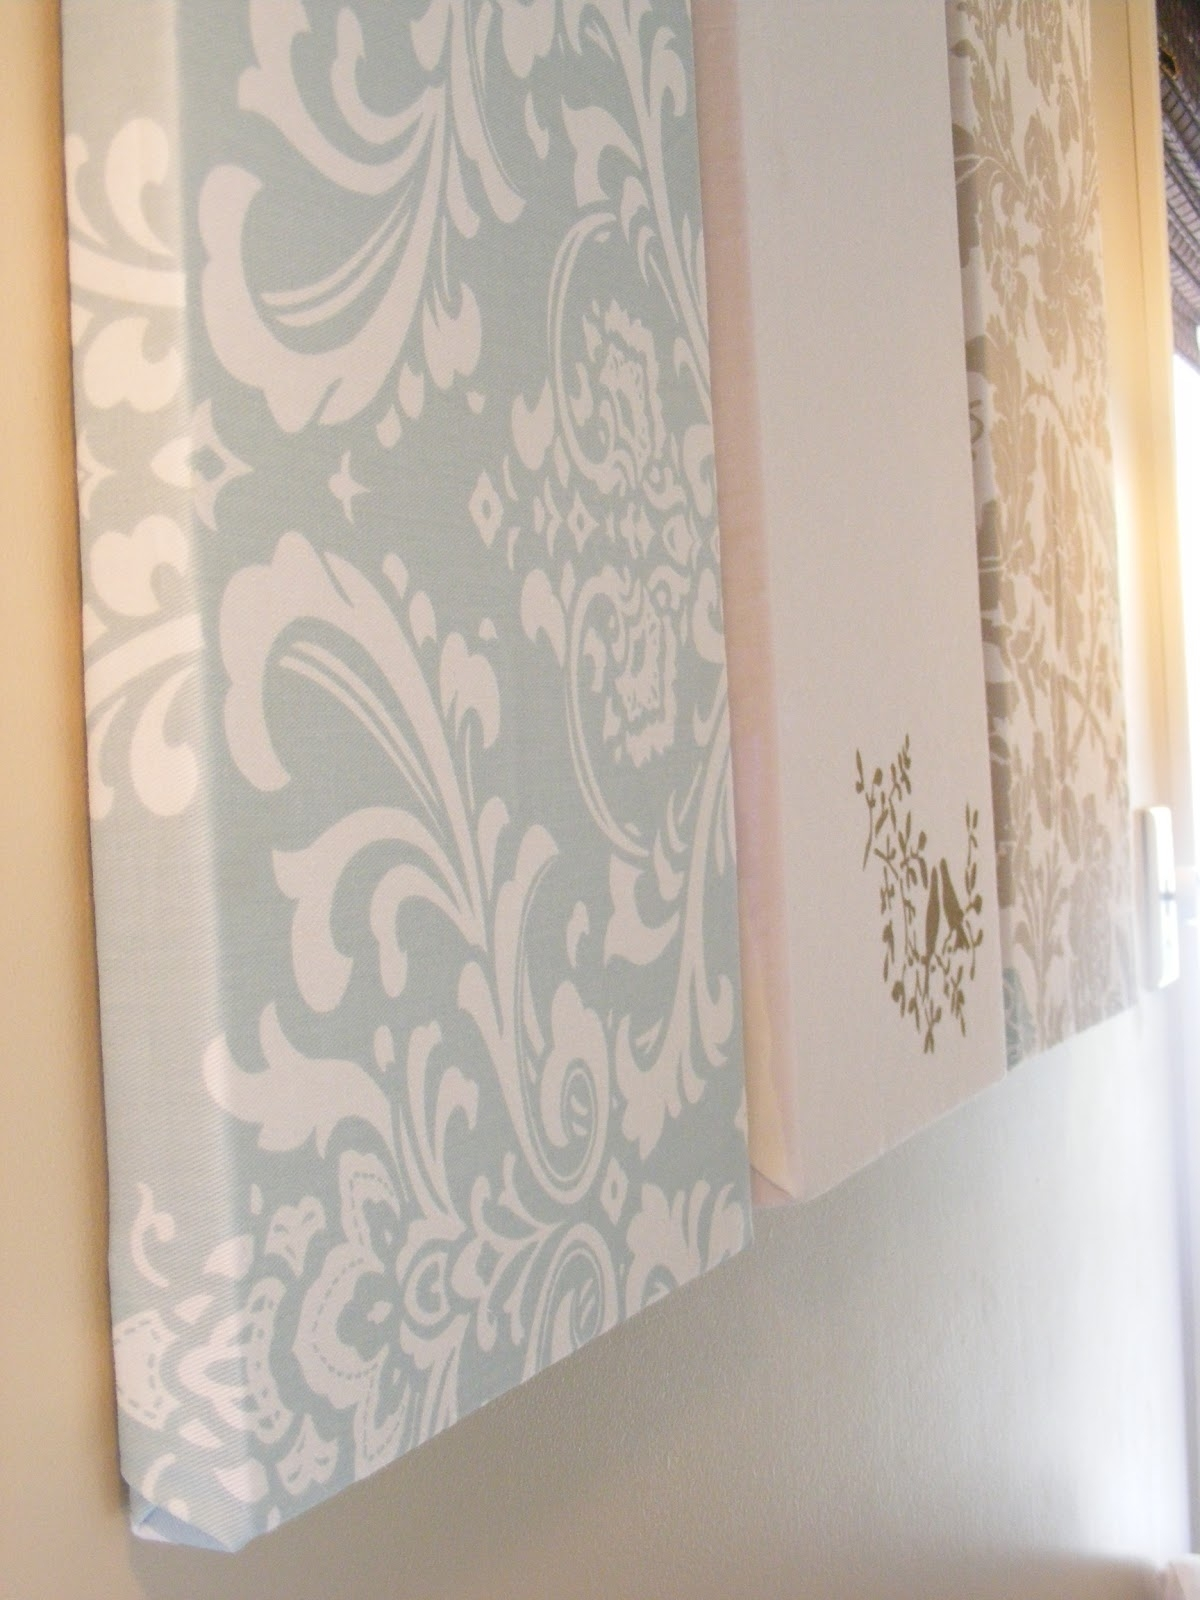 The Complete Guide To Imperfect Homemaking: Simple, Thrifty Diy Art Pertaining To Most Recently Released Damask Fabric Wall Art (View 14 of 15)